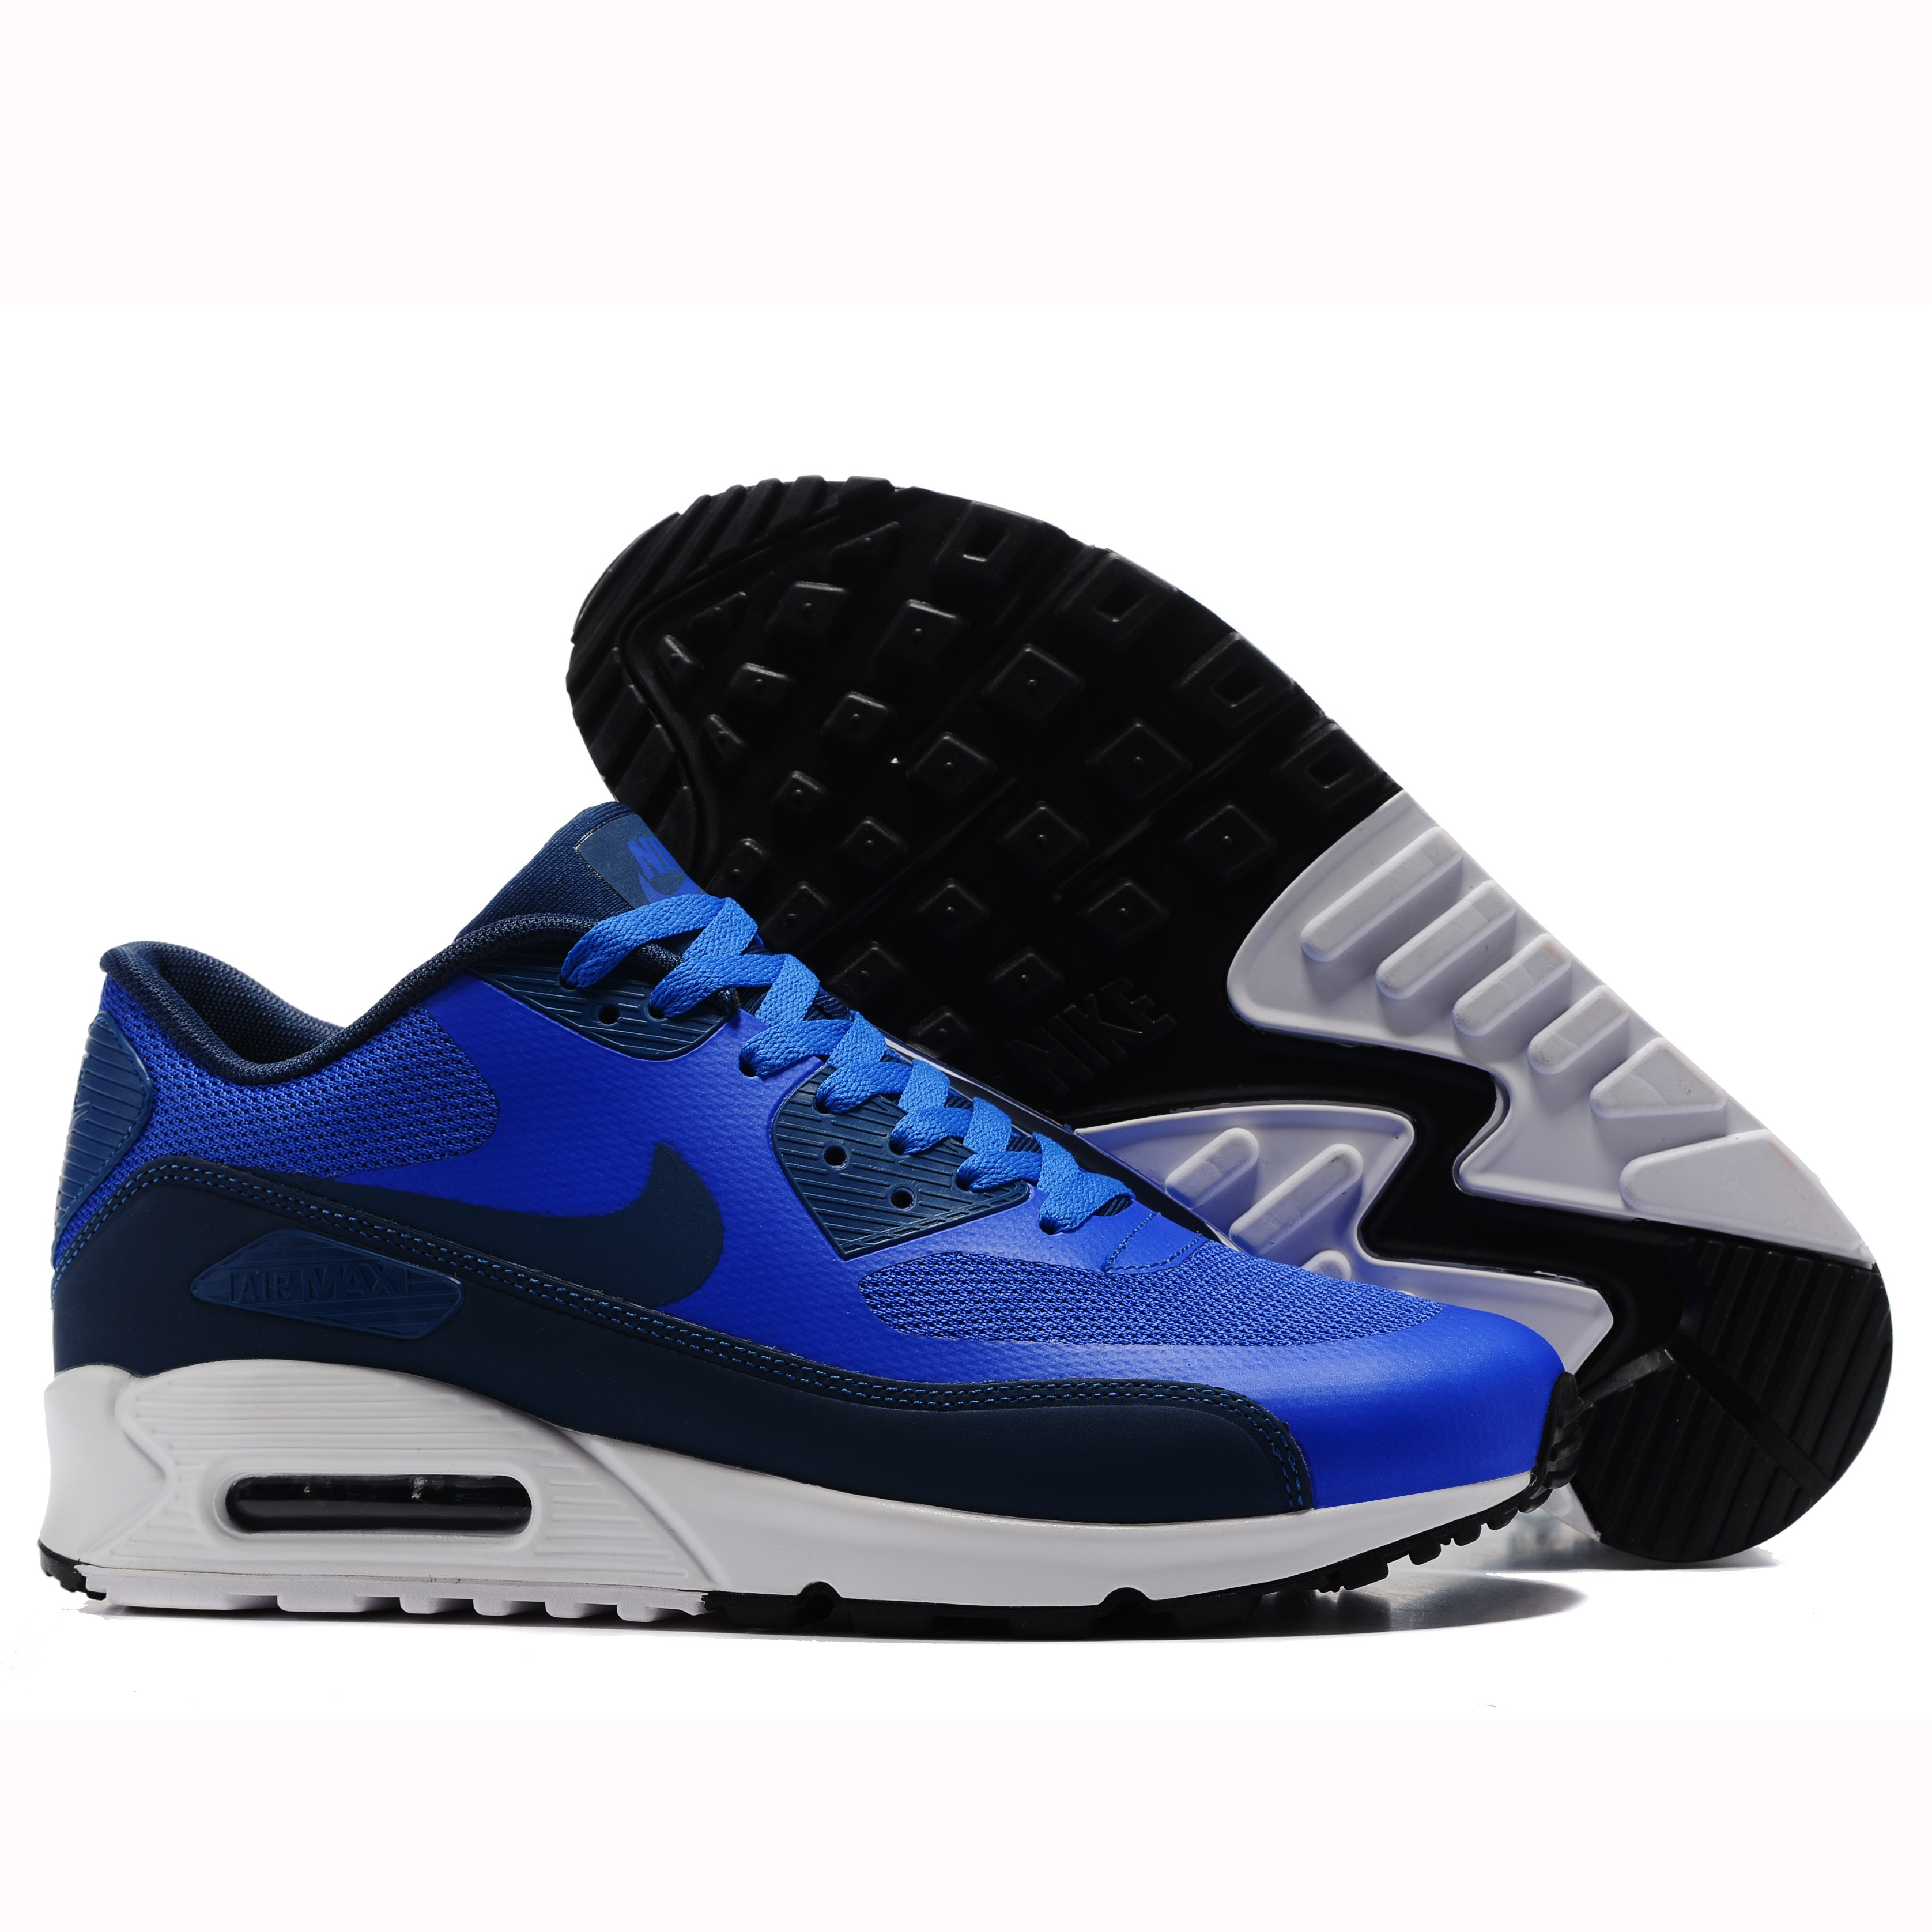 Image of Trendsetter   Nike Air Max 90 Ultra 2.0 Essential  Women Men Fashion Casual Sneakers Sport Shoes